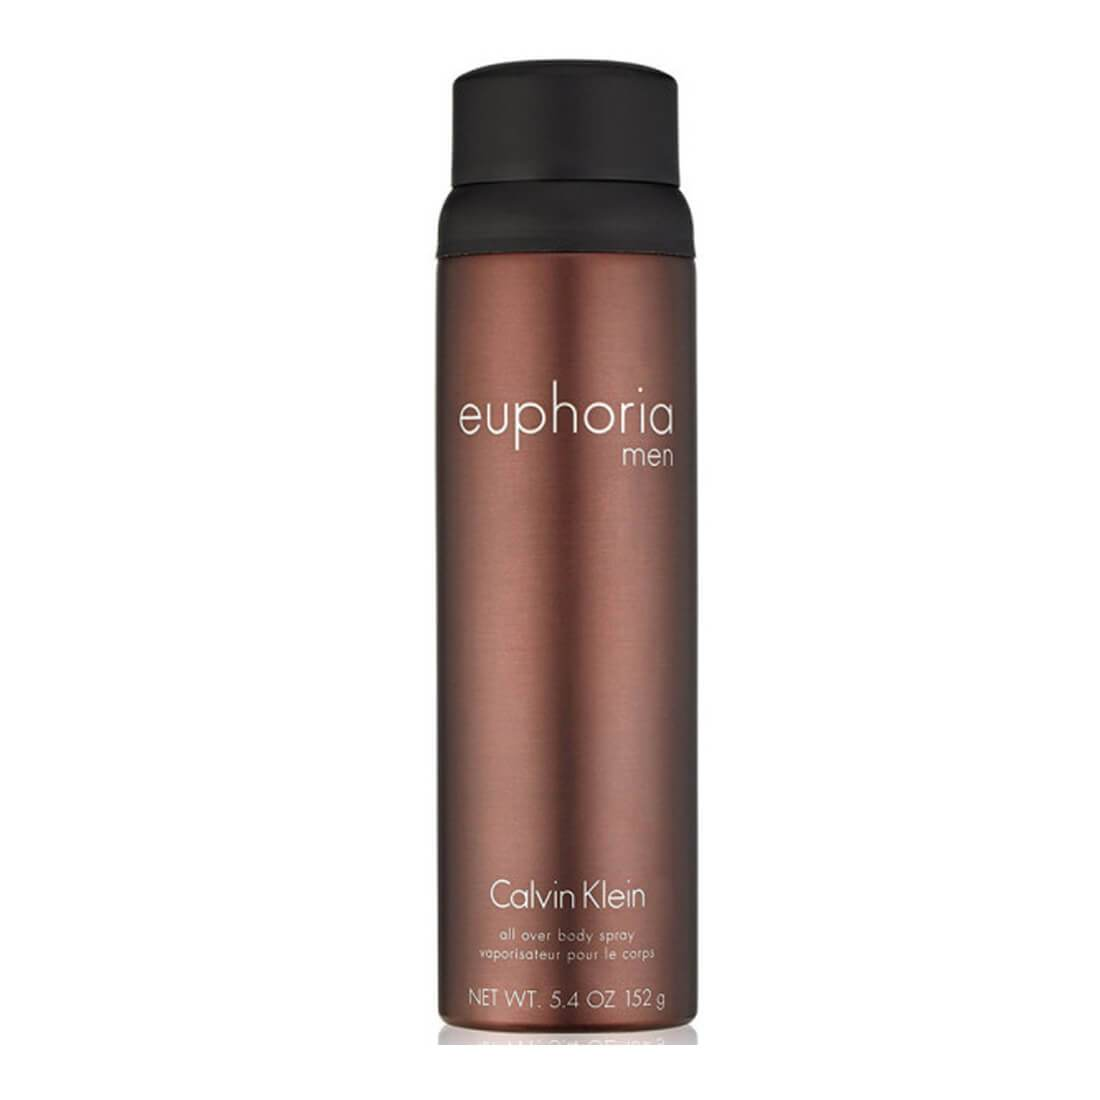 Calvin Klein Euphoria For Men Deodorant Body Spray 150ml